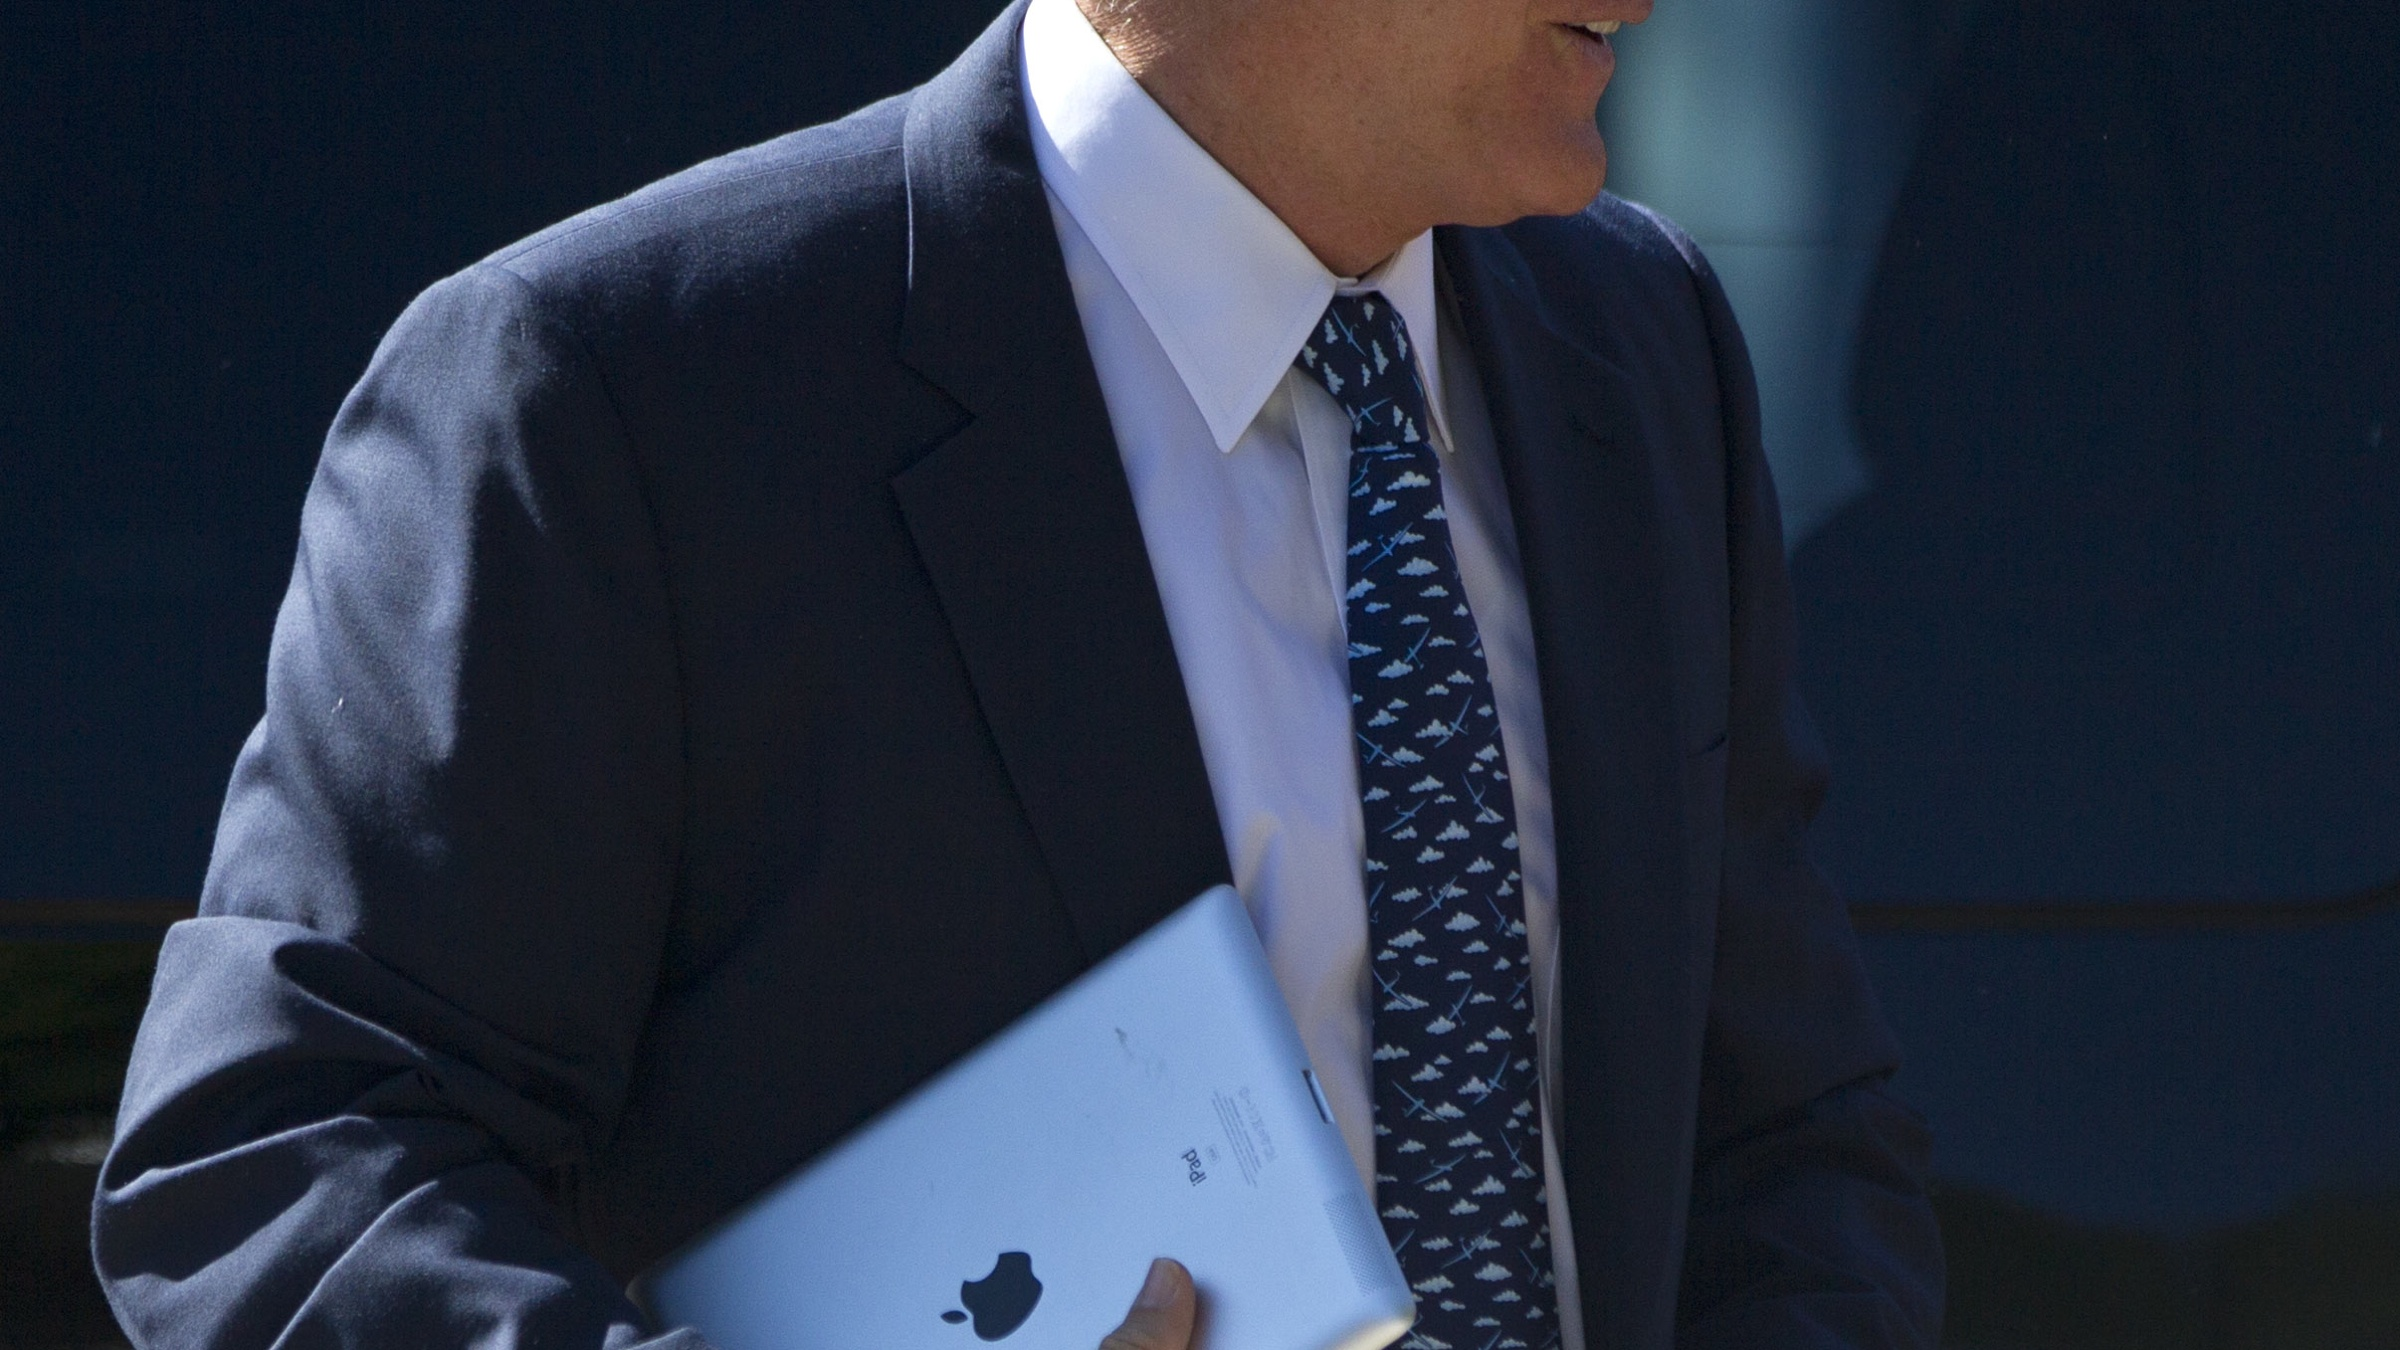 Republican presidential candidate, former Massachusetts Gov. Mitt Romney, carries an iPad as he walks into the Church of Jesus Christ of Latter-day Saints on Sunday, Aug. 19, 2012, in Wolefboro, N.H. (AP Photo/Evan Vucci)